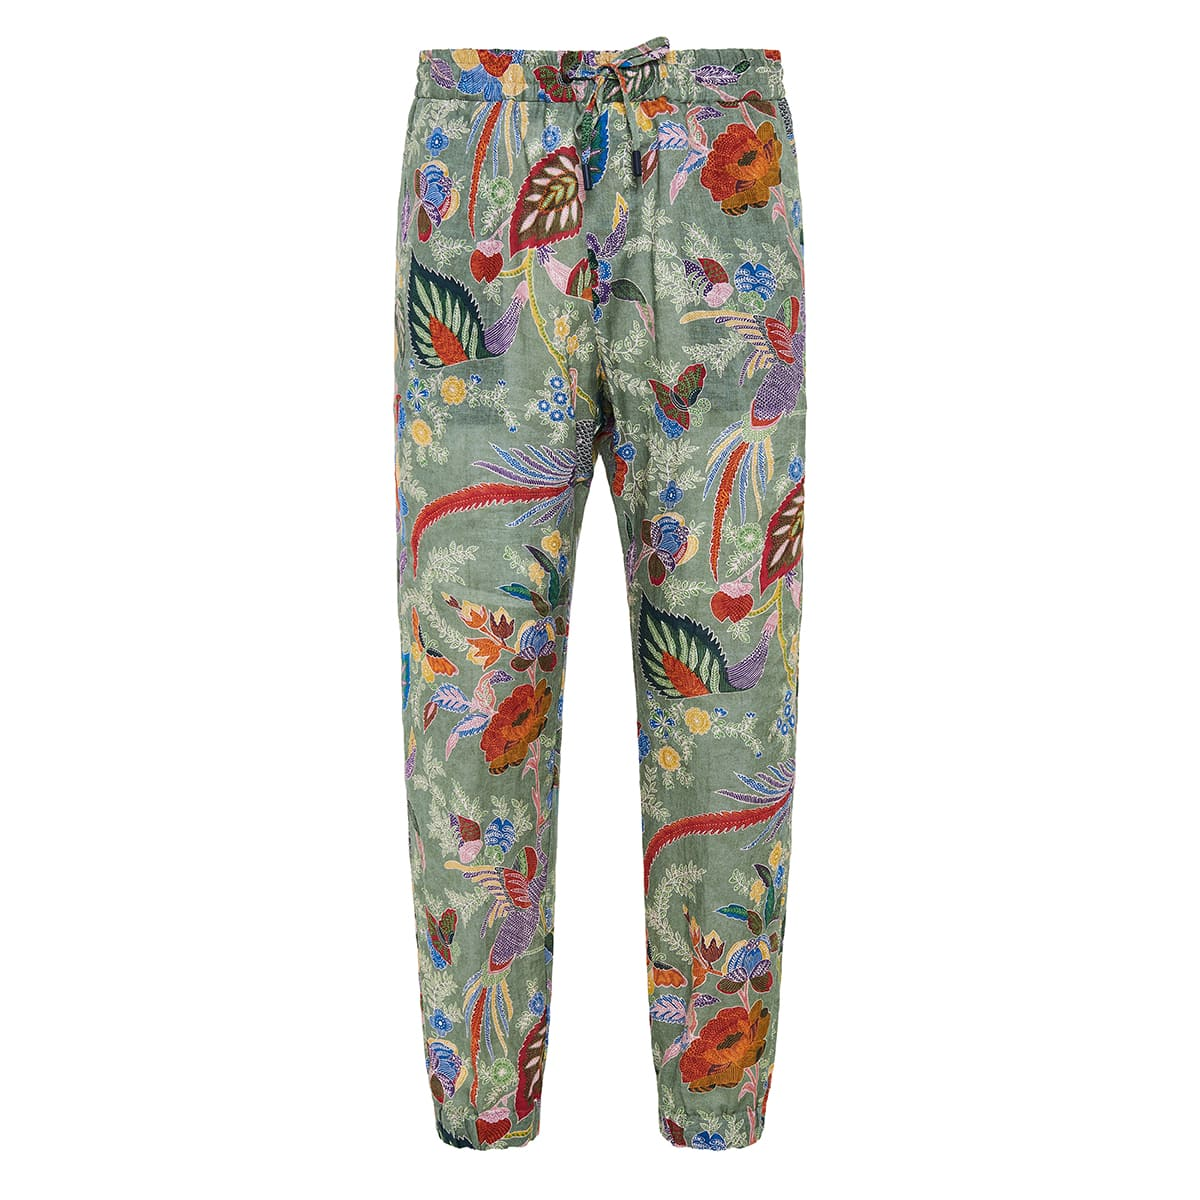 Printed linen trousers